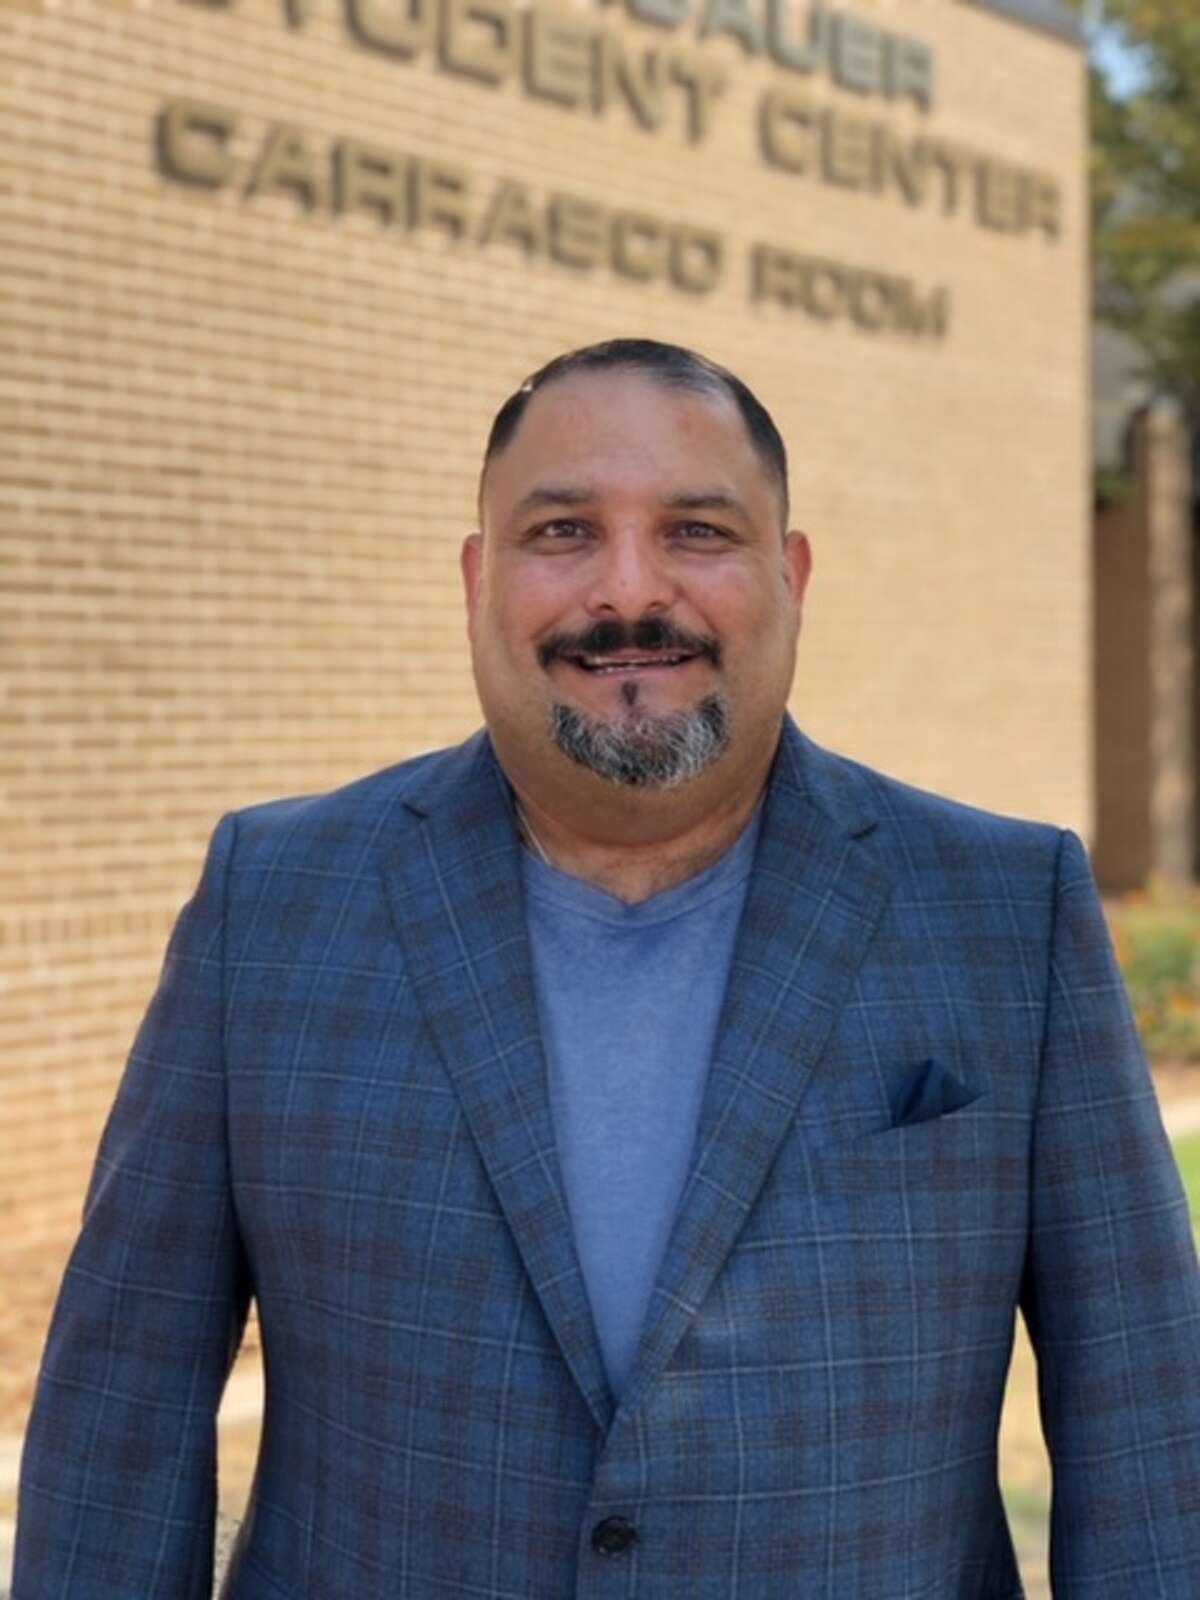 In the Place 7, race, Adrian Carrasco doubled up his competition. His 21,863 votes were better than incumbent Will R. Green's 11,431 votes and R. Shaun Rainey's 10,113. Carrasco won 50.3 percent of the vote, which was enough to avoid a runoff.